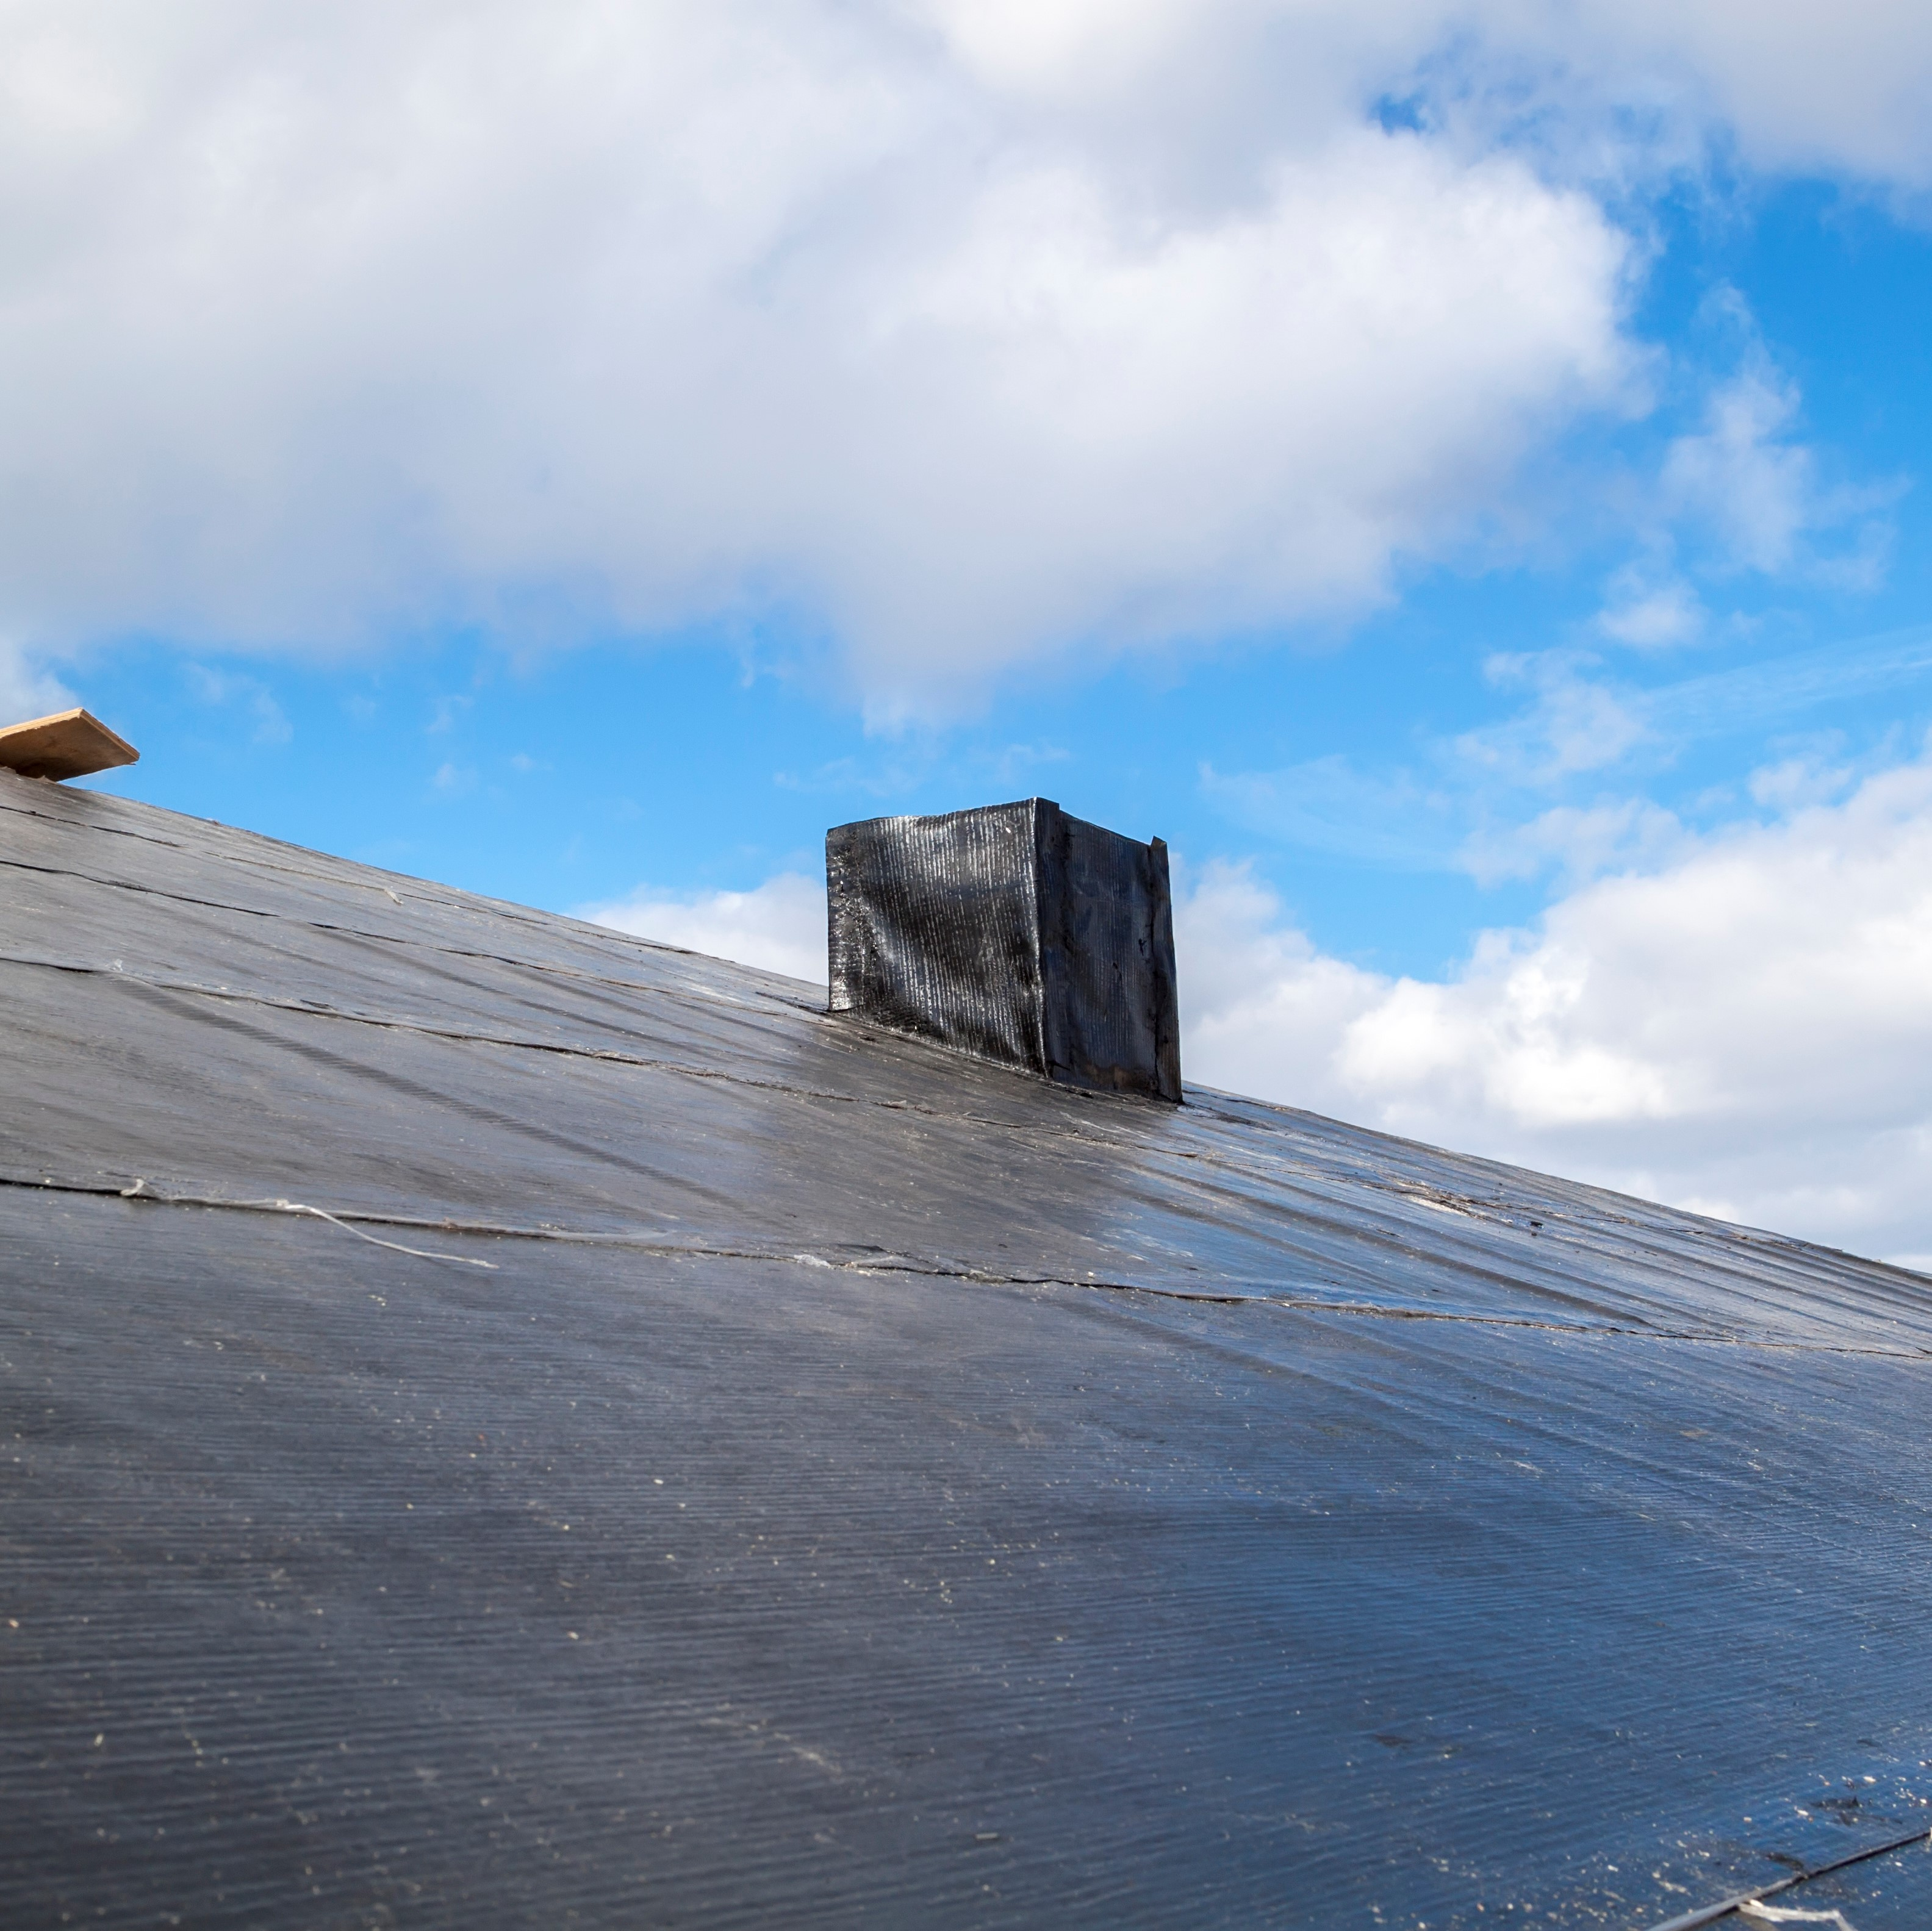 EPDM present on a commercial roof.